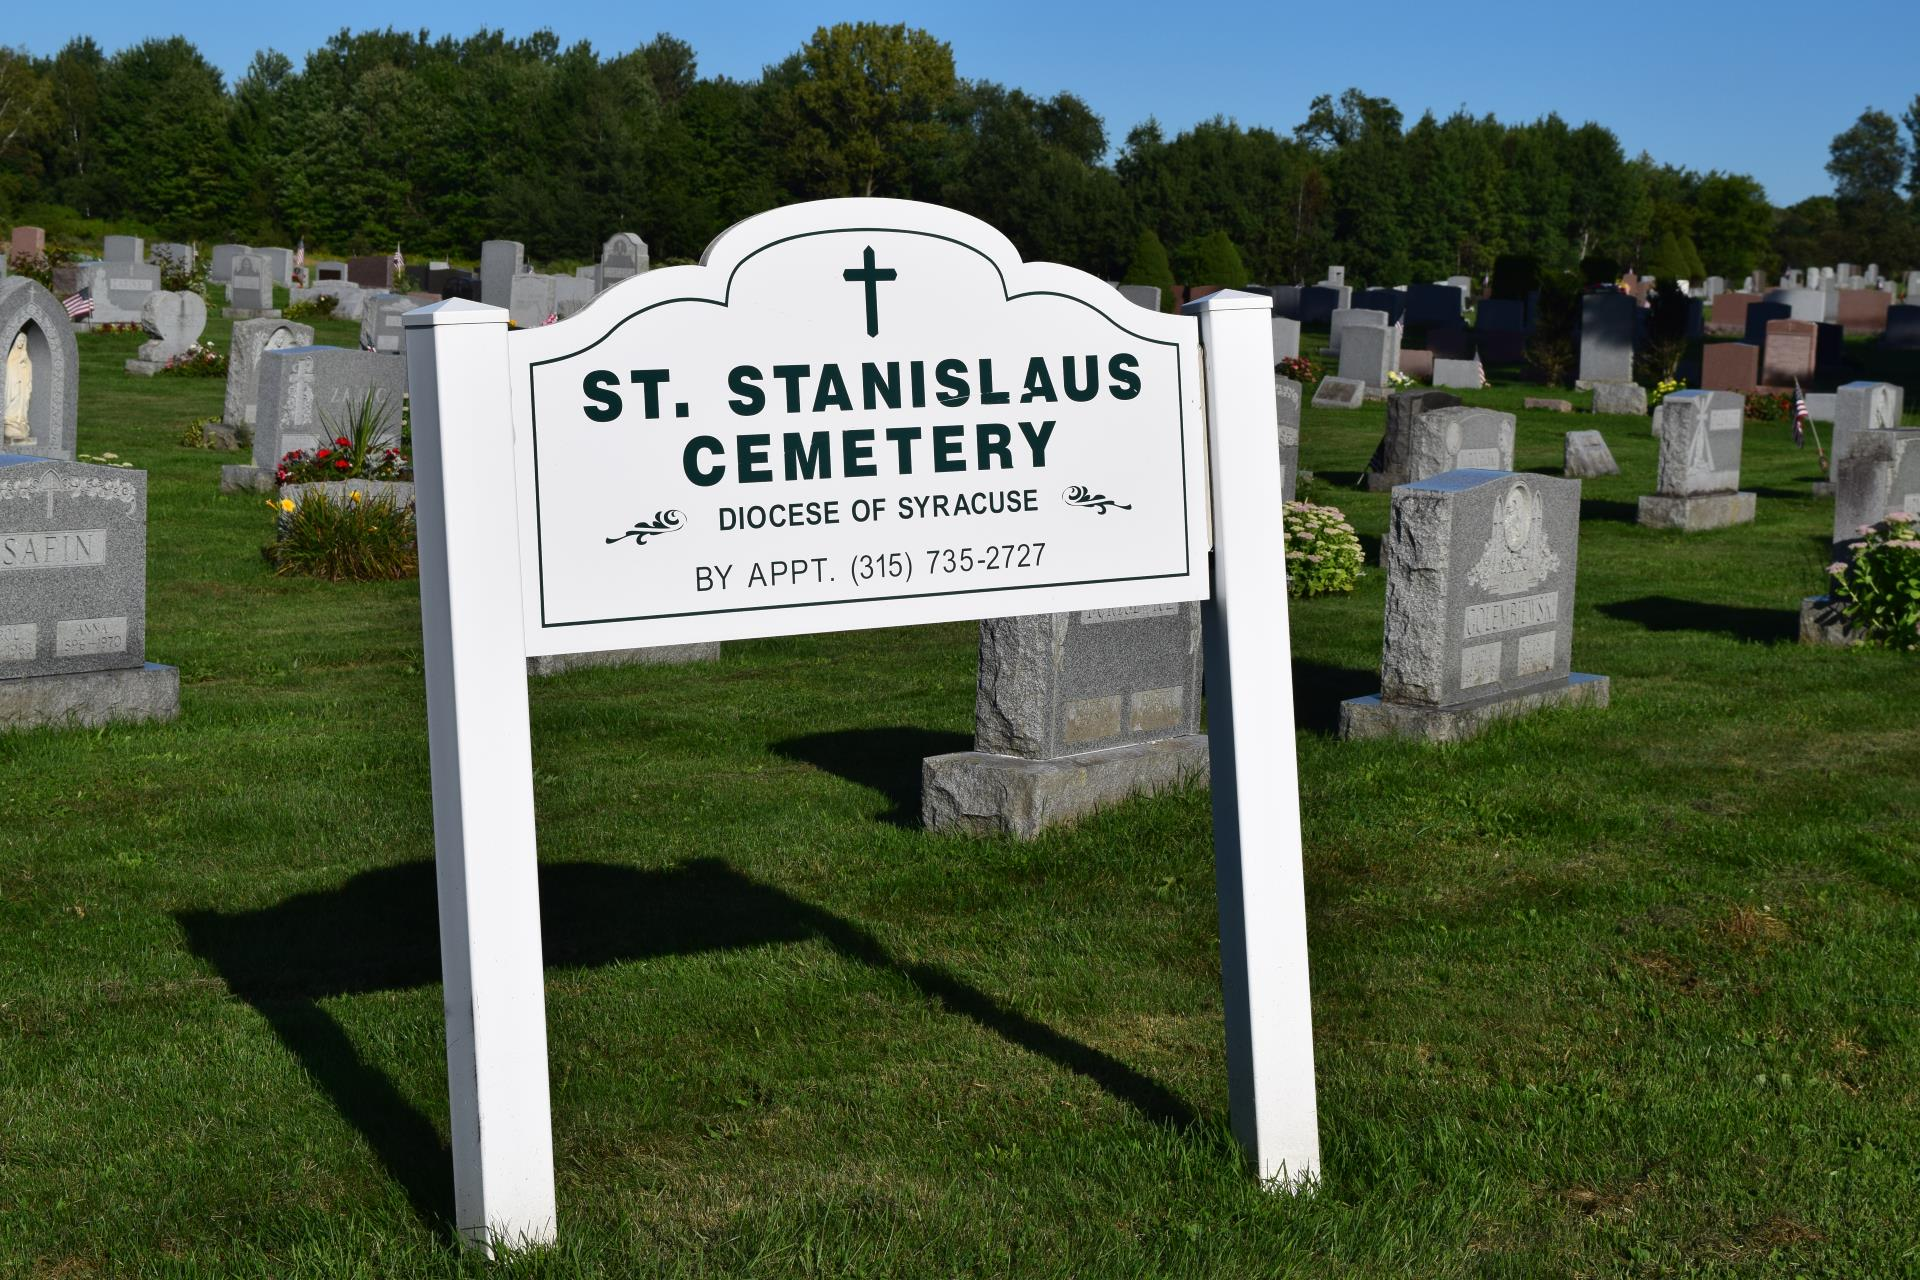 Entrance sign at St. Stanislaus Cemetery